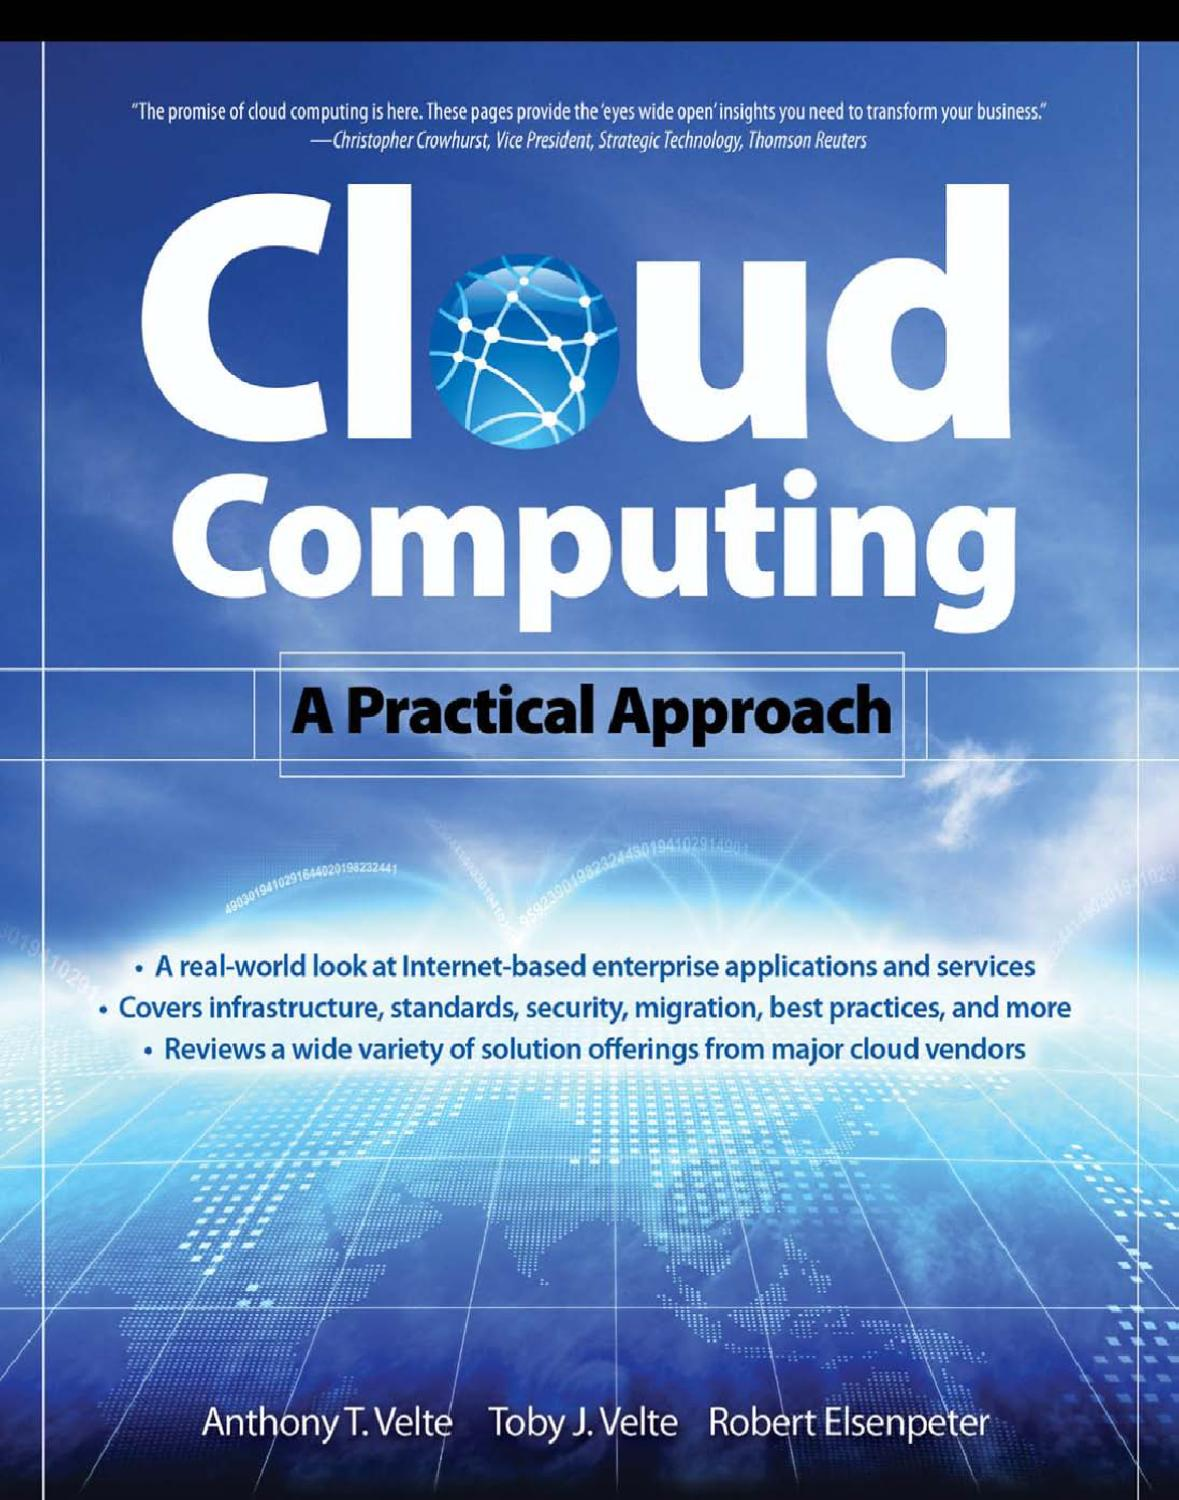 Cloud computing a practical approach by dahar sappiring issuu fandeluxe Image collections